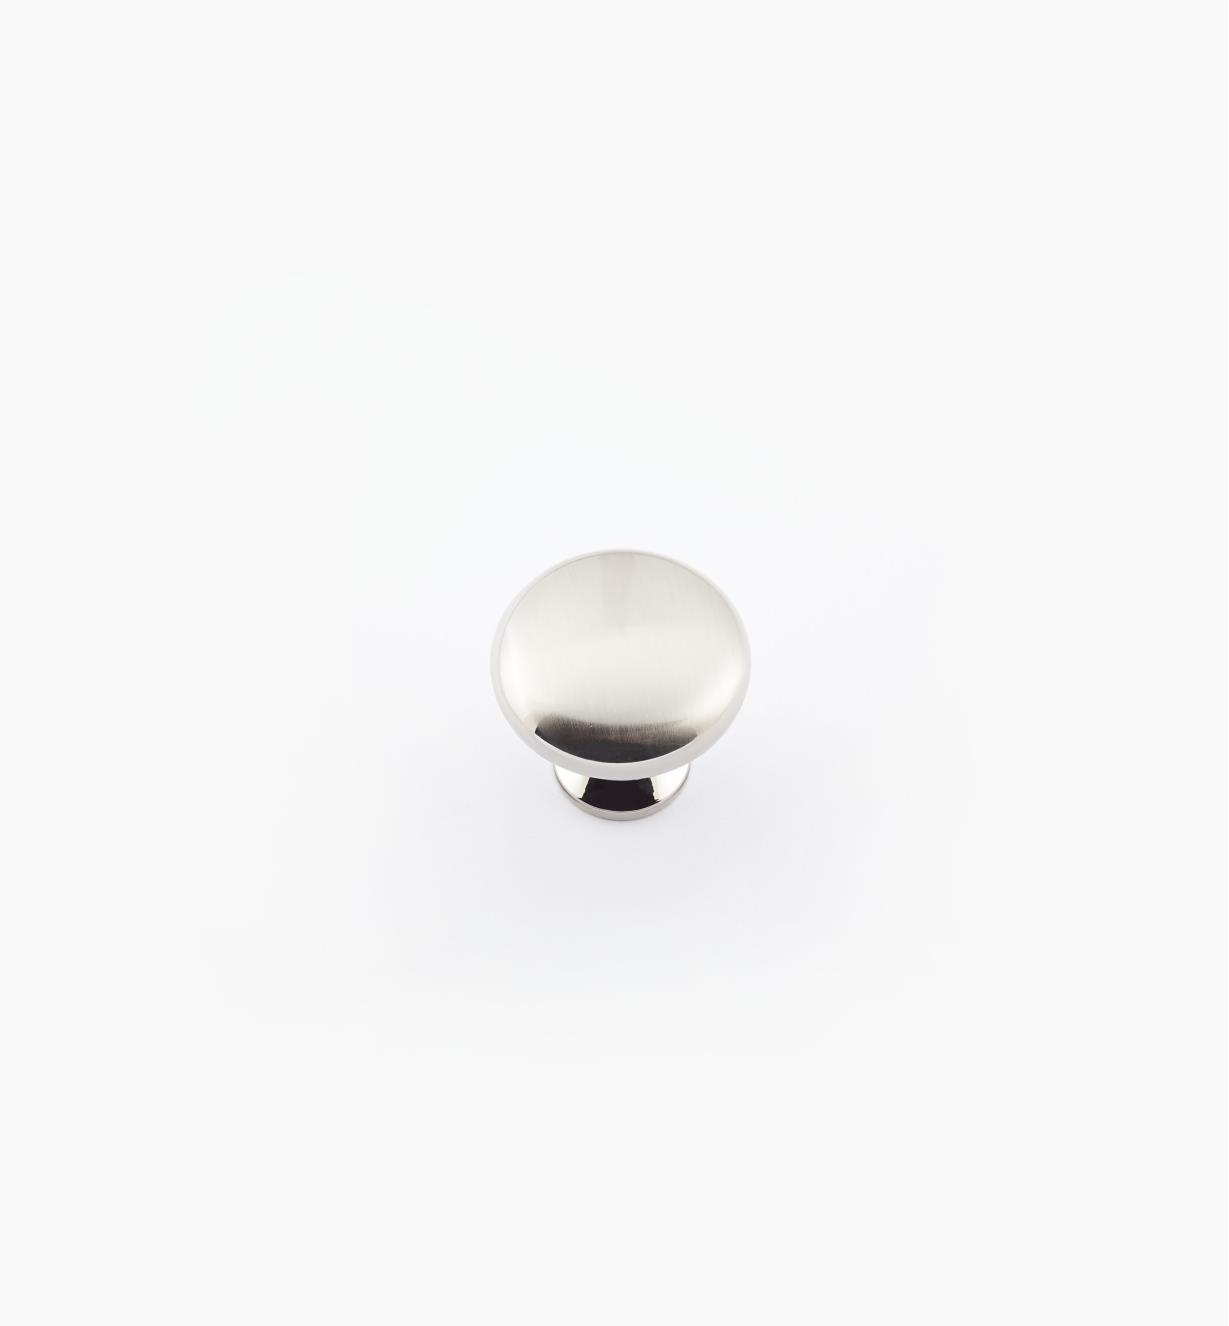 "02A2422 - 1 1/8"" x 1"" Satin Nickel Anniversary Knob"